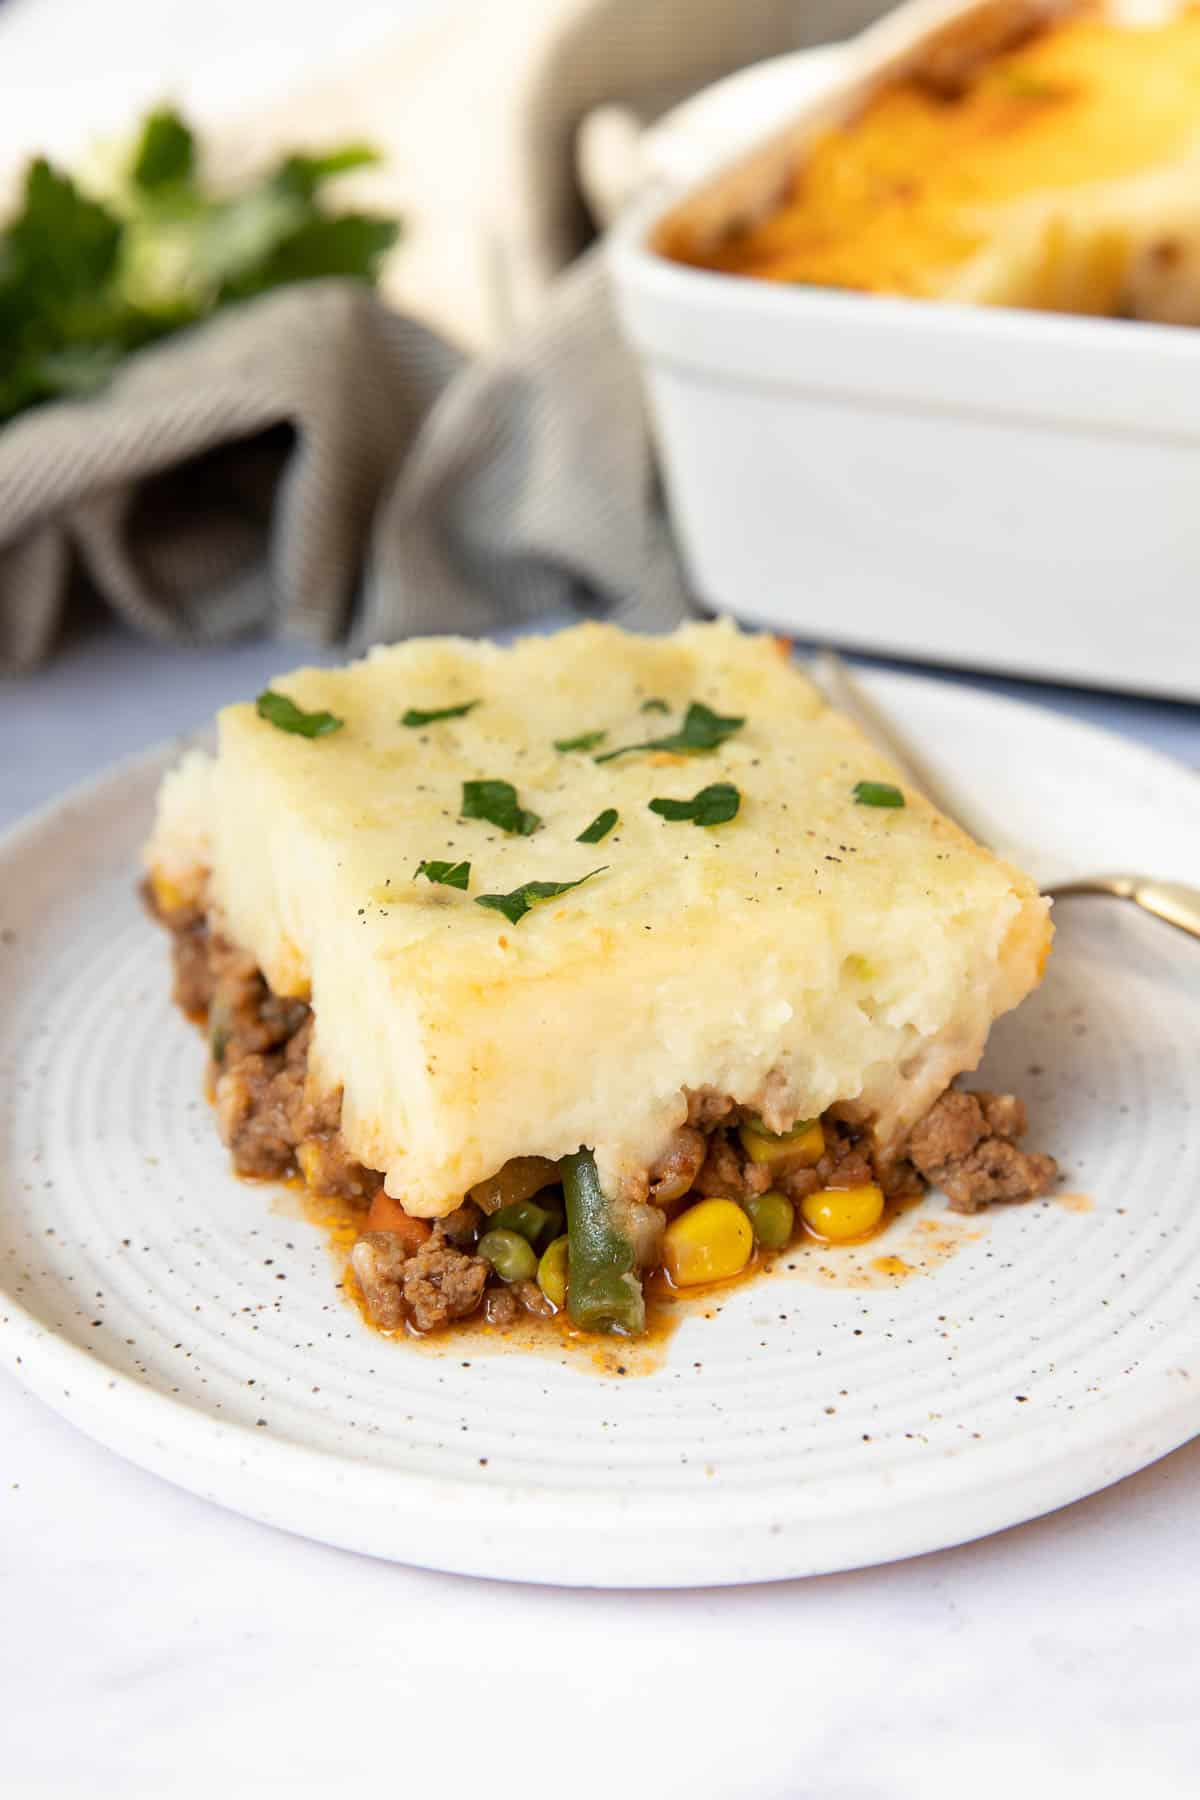 Slice of cottage pie for two on a plate.